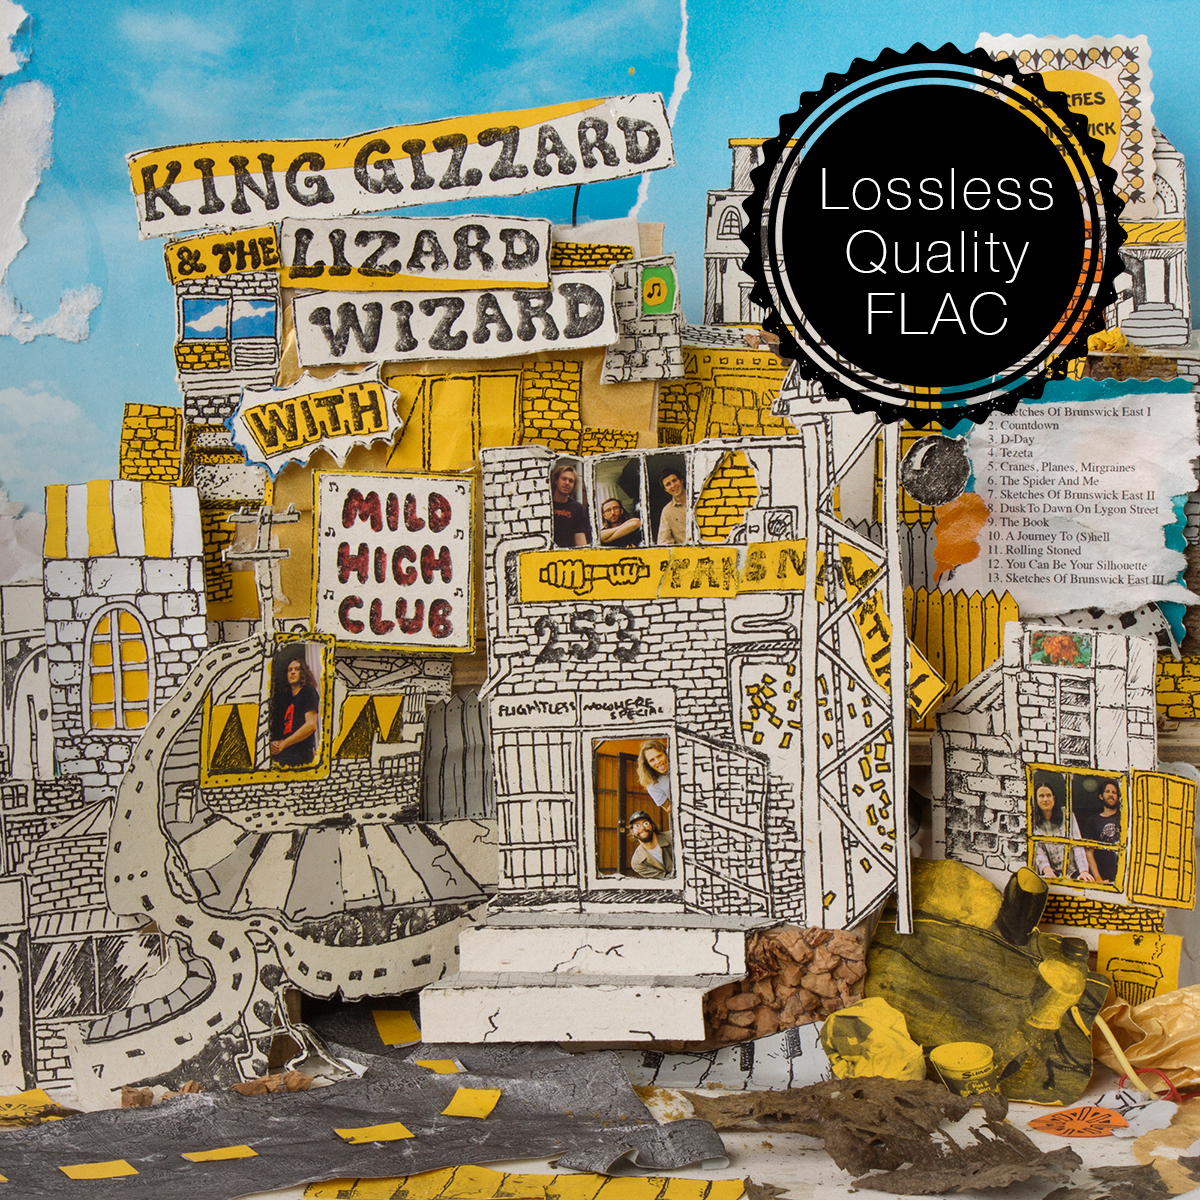 King Gizzard & the Lizard Wizard With Mild High Club - Sketches Of Brunswick East Lossless Quality FLAC